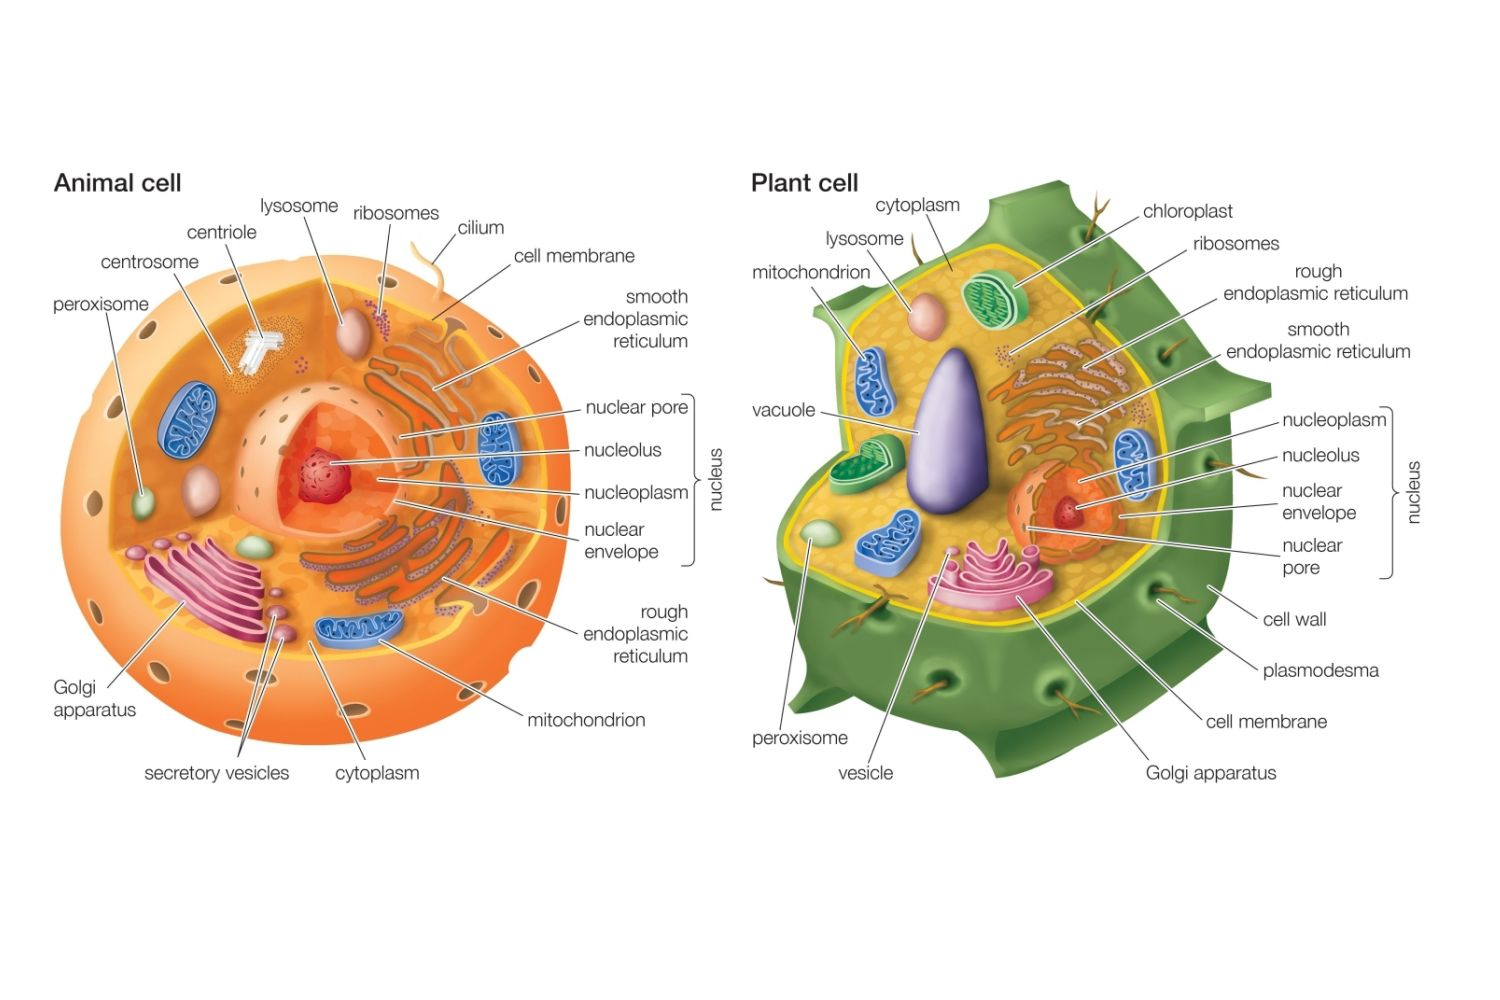 Essential Differences Between Animal and Plant Cells - photo#5